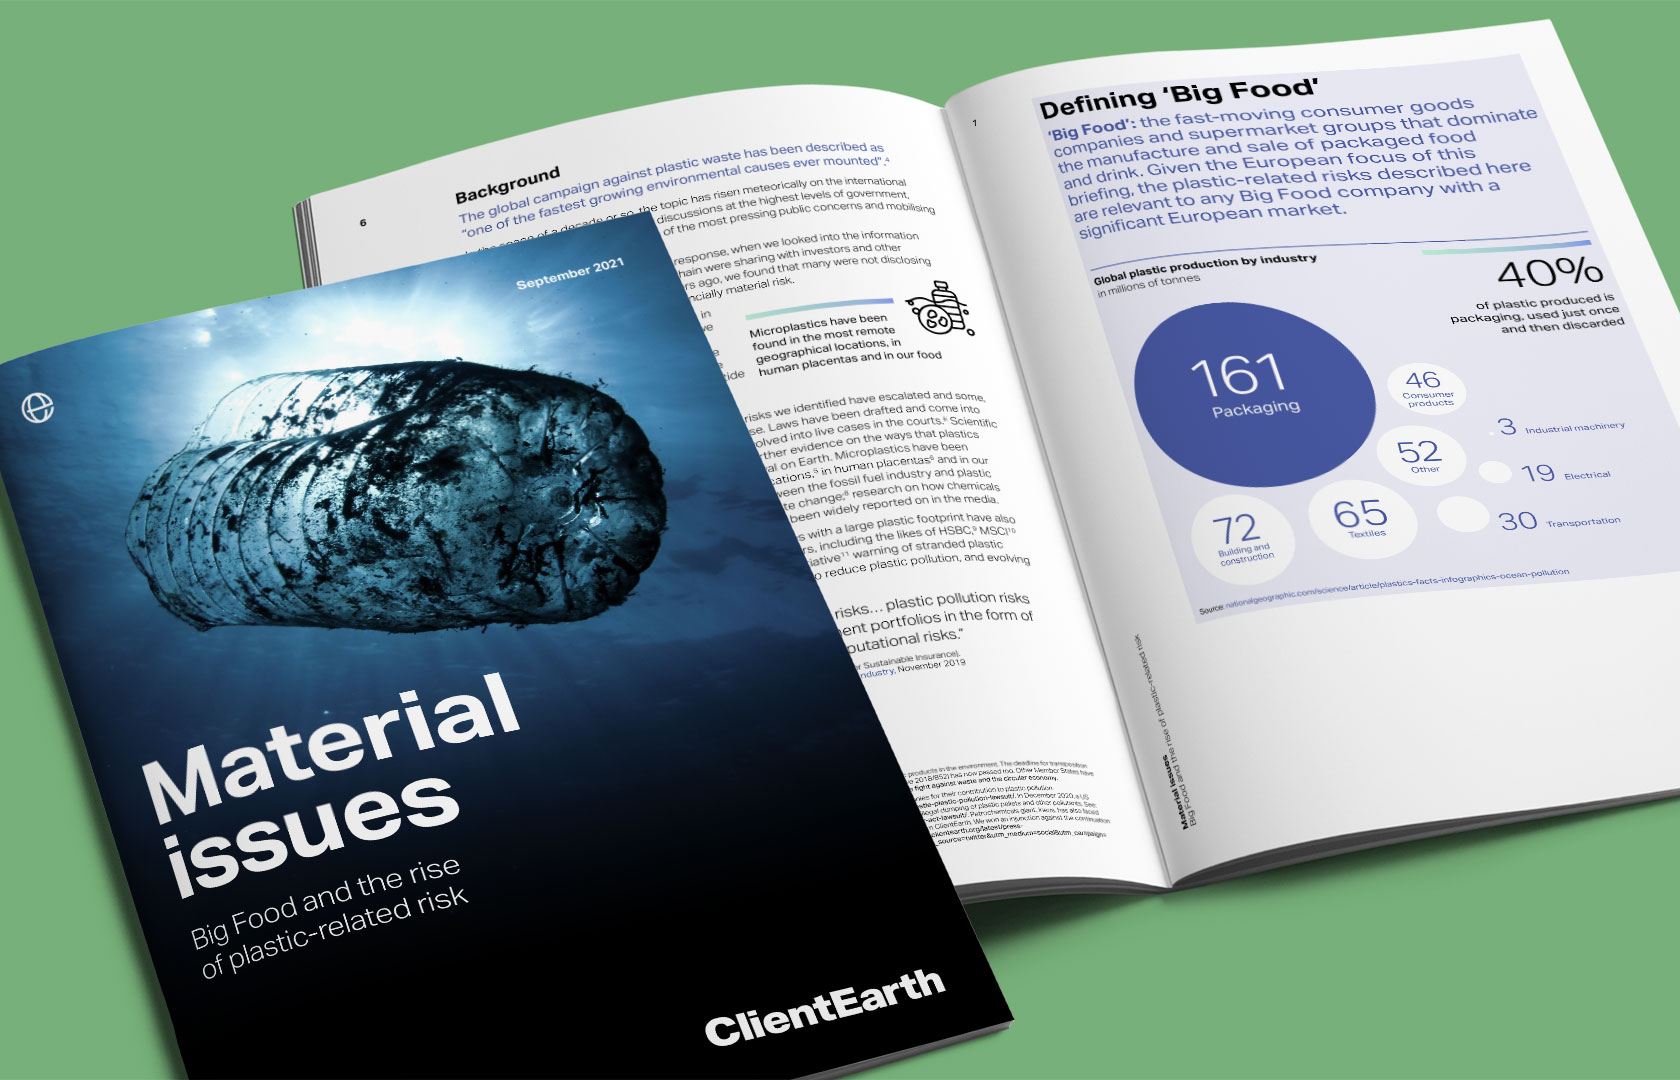 ClientEarth Material issues report